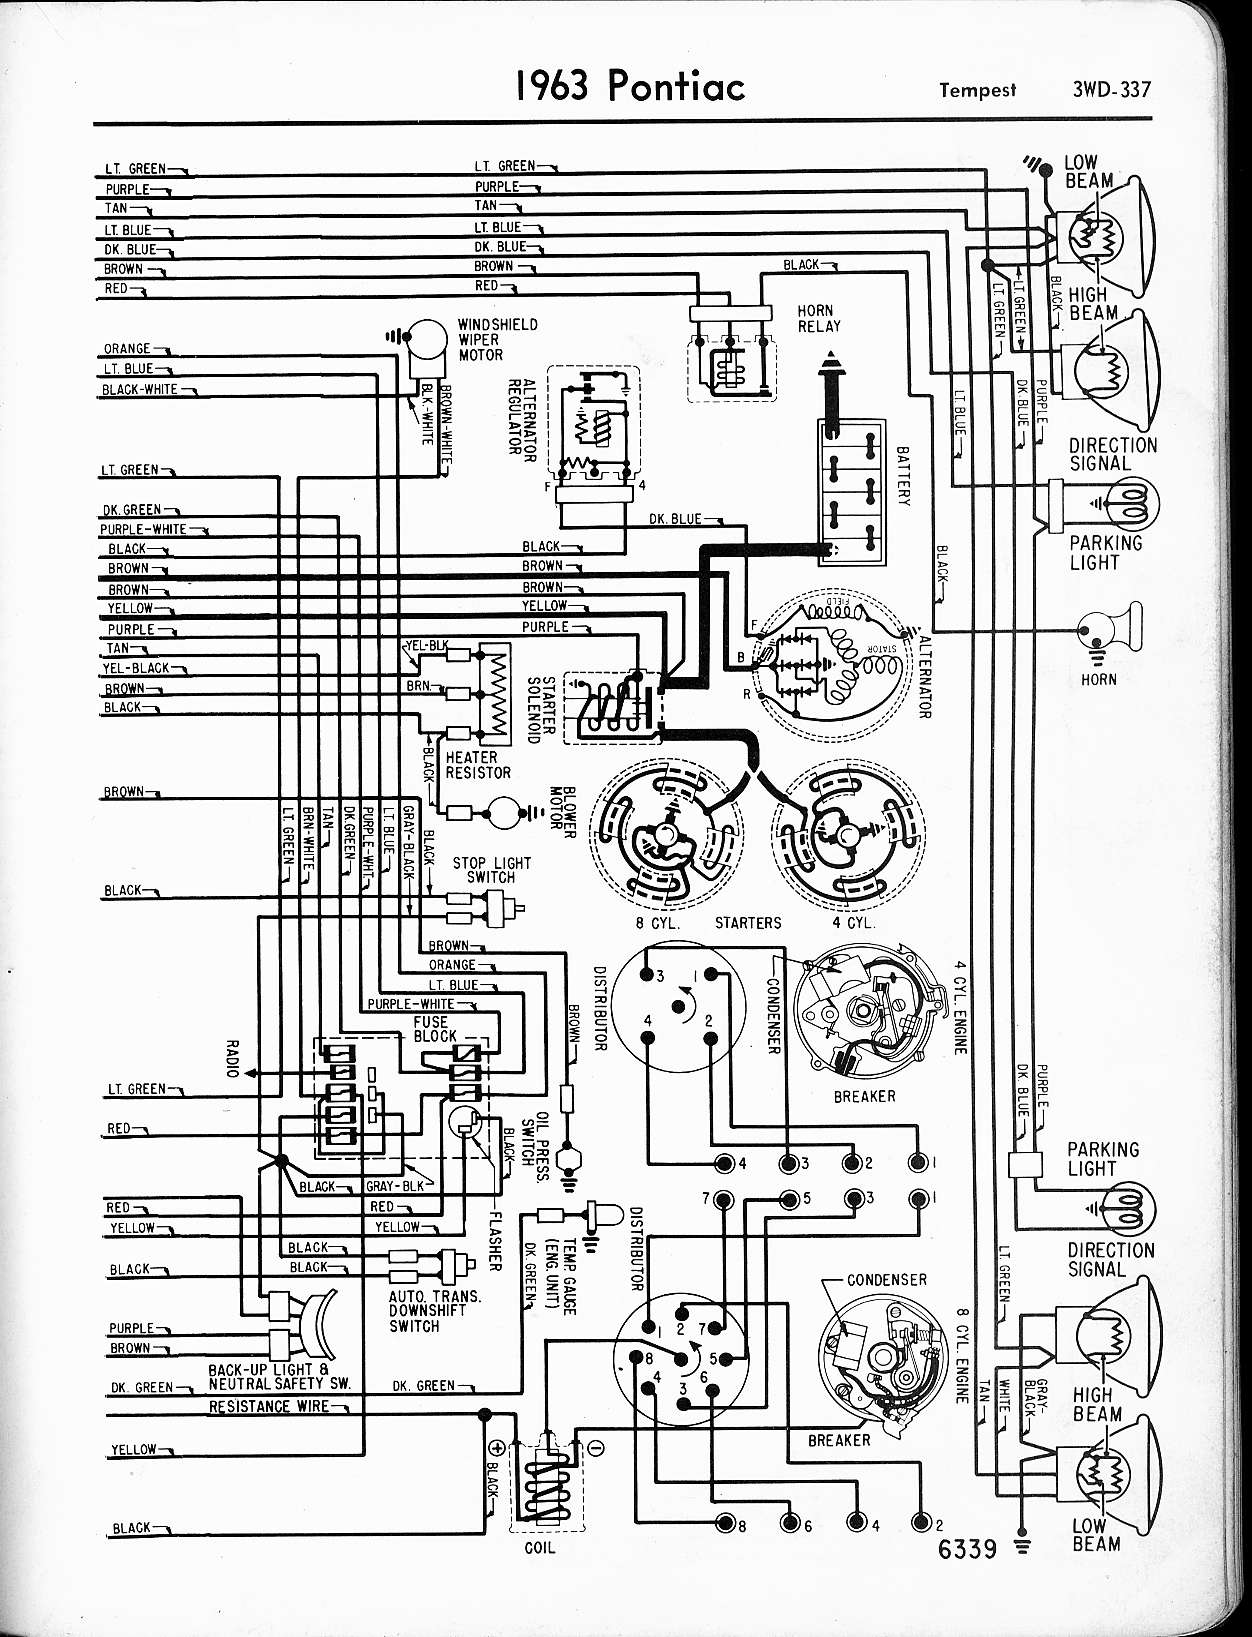 Pontiac Engine Wiring Diagram : Gto wiring diagram free engine image for user